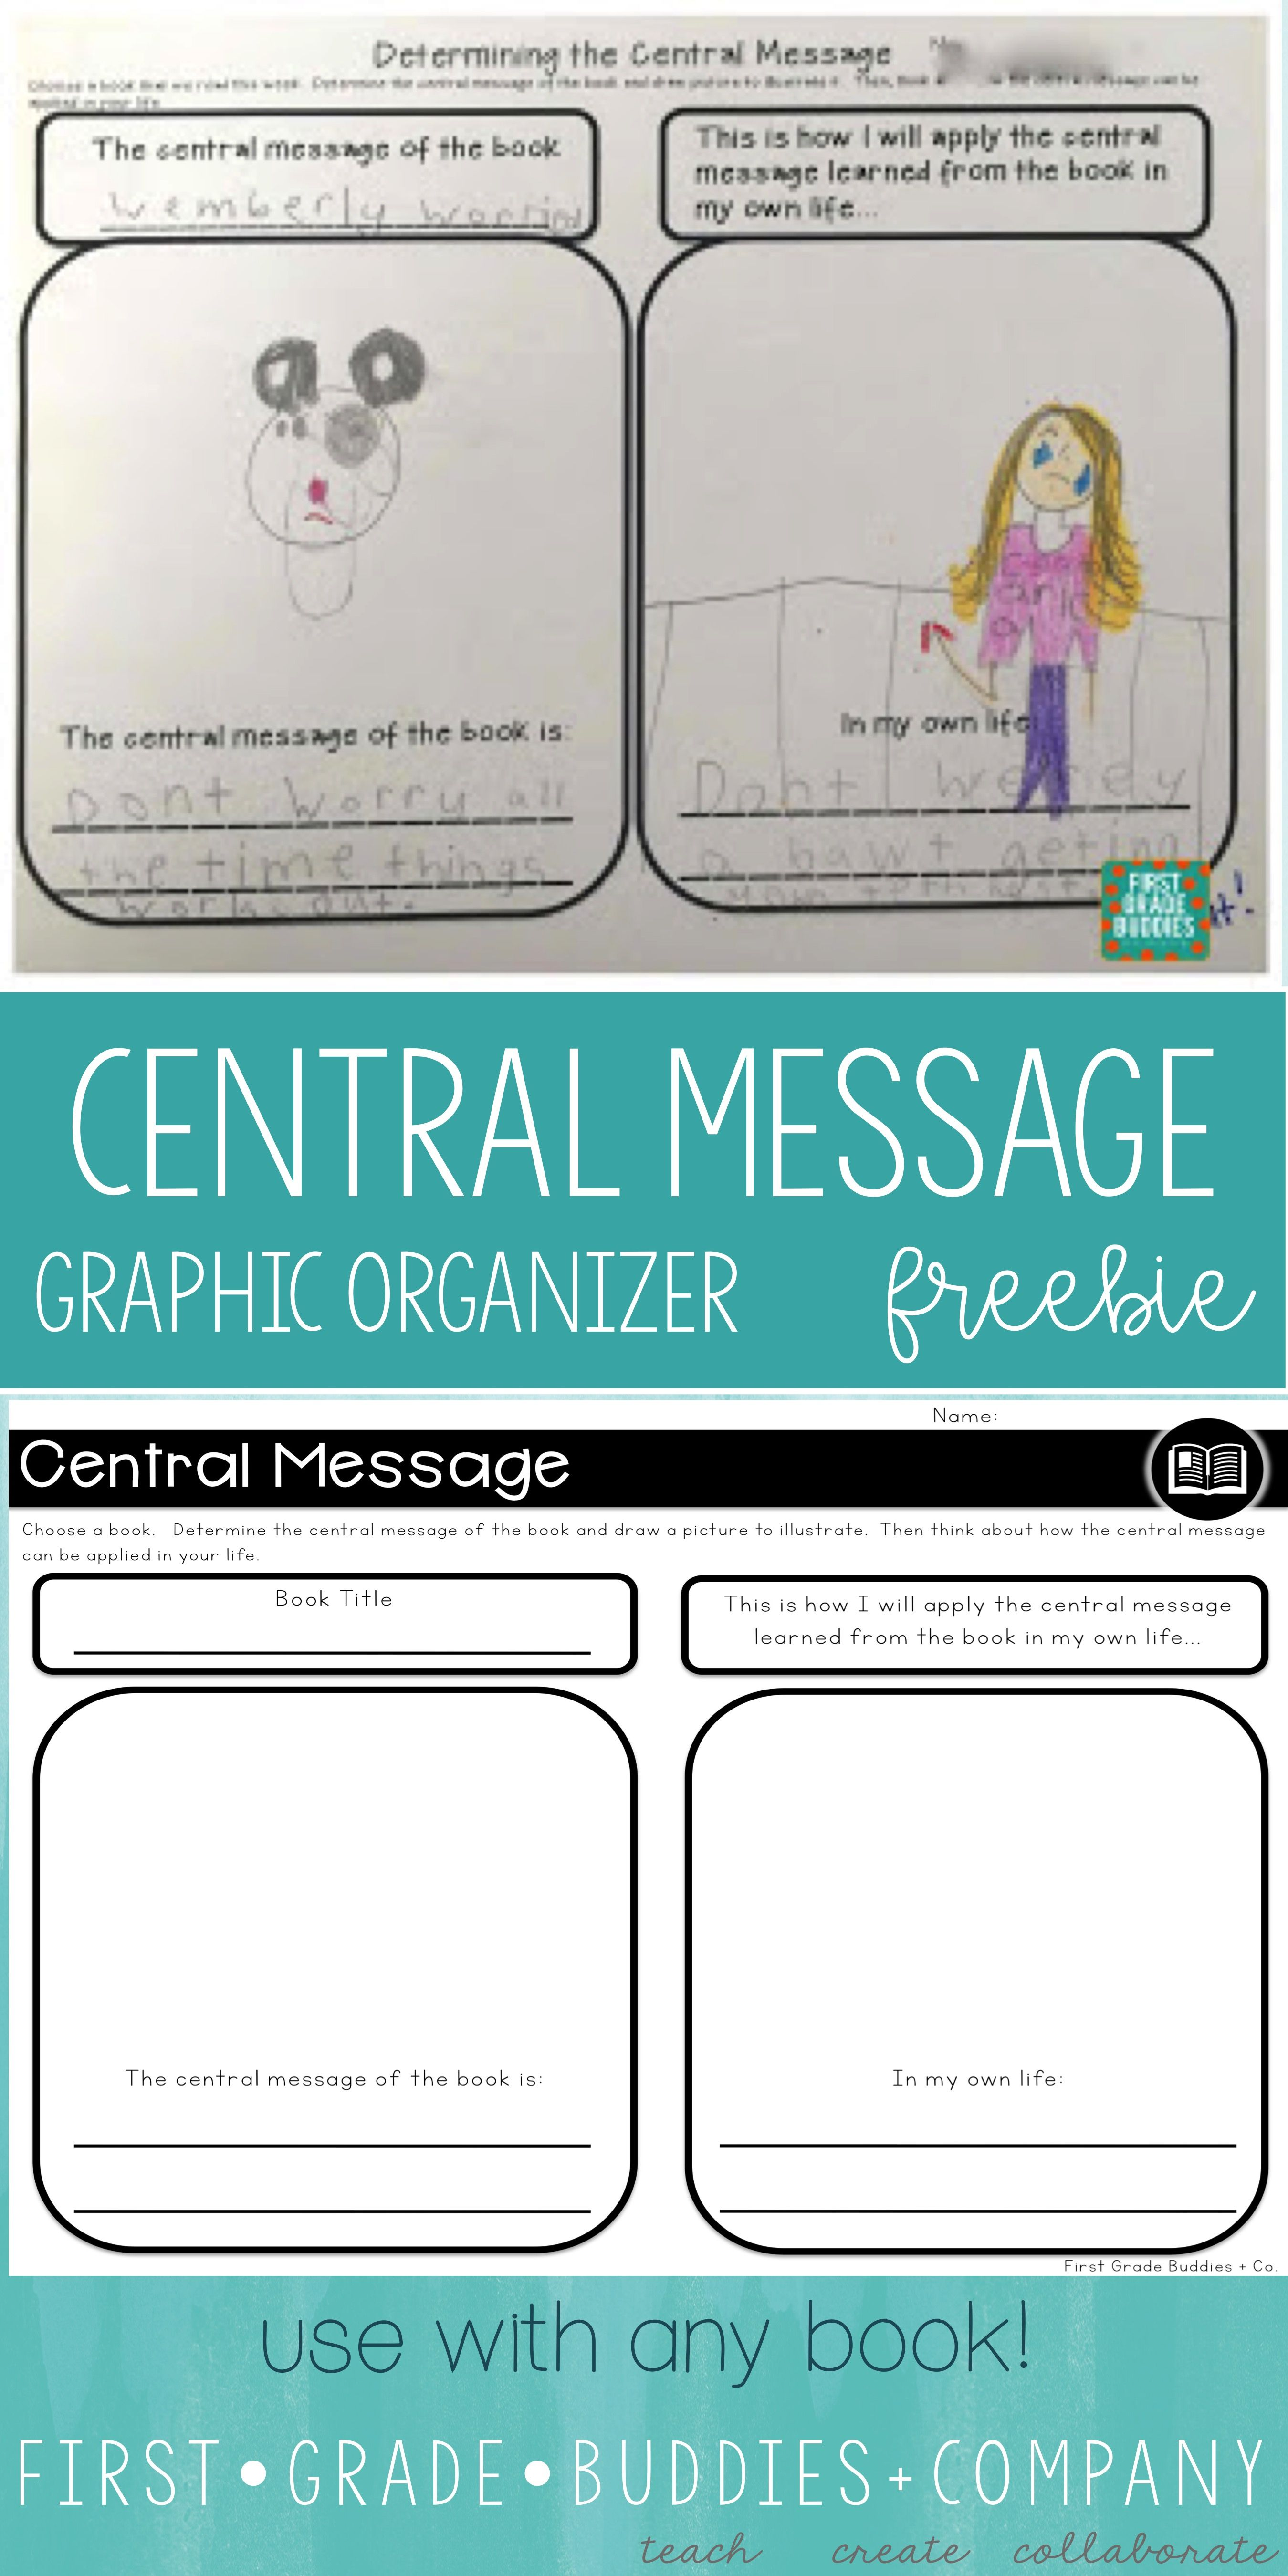 hight resolution of First Grade Buddies: Graphic Organizers for ANY Book! We created one great  big FREE reso…   Reading graphic organizers